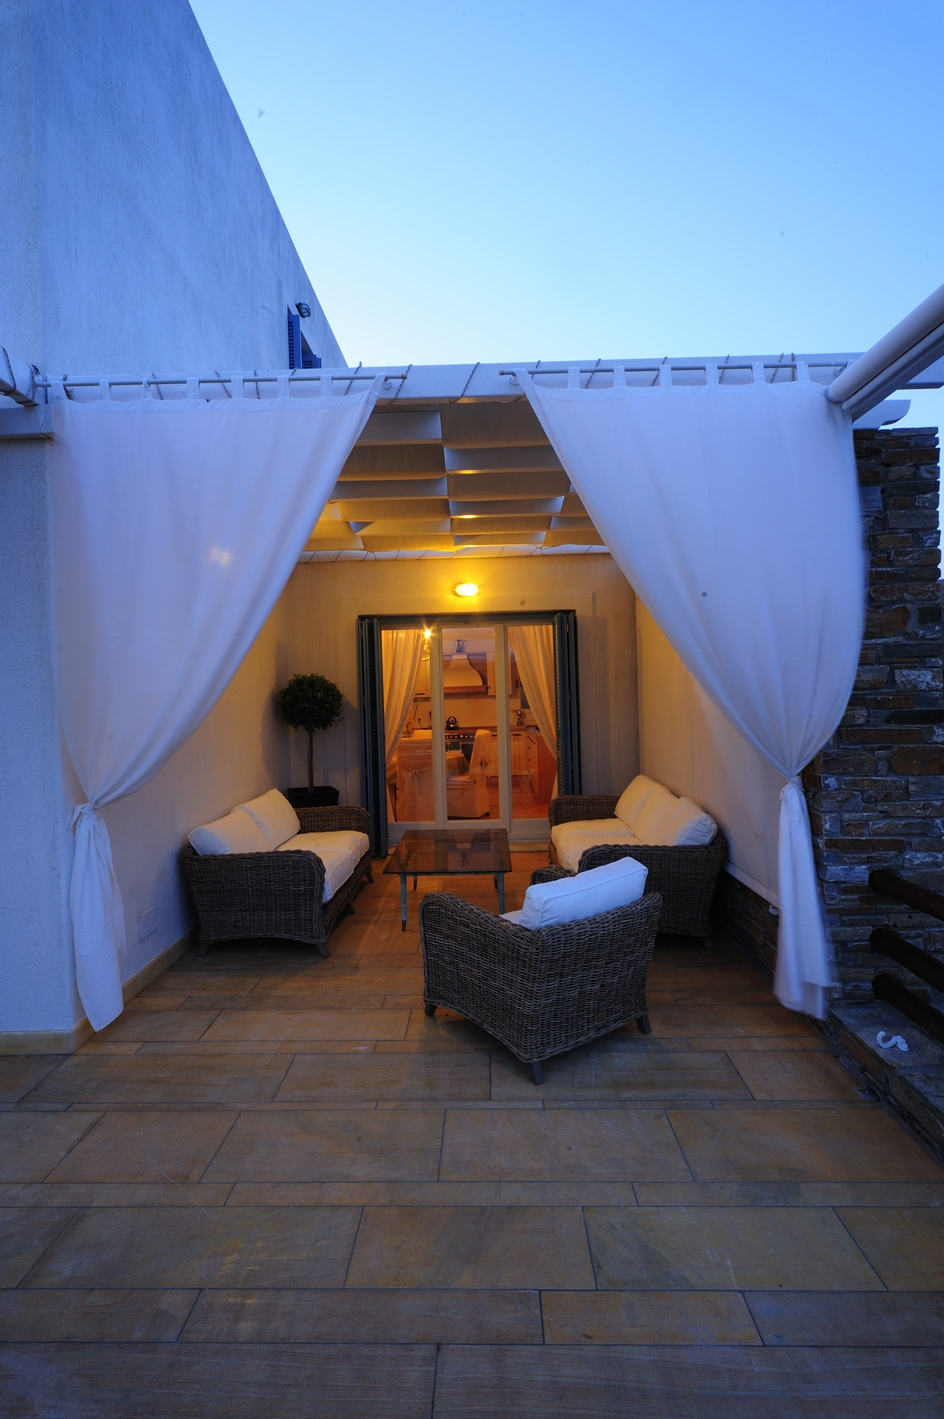 Quiet evenings in our villa in Andros